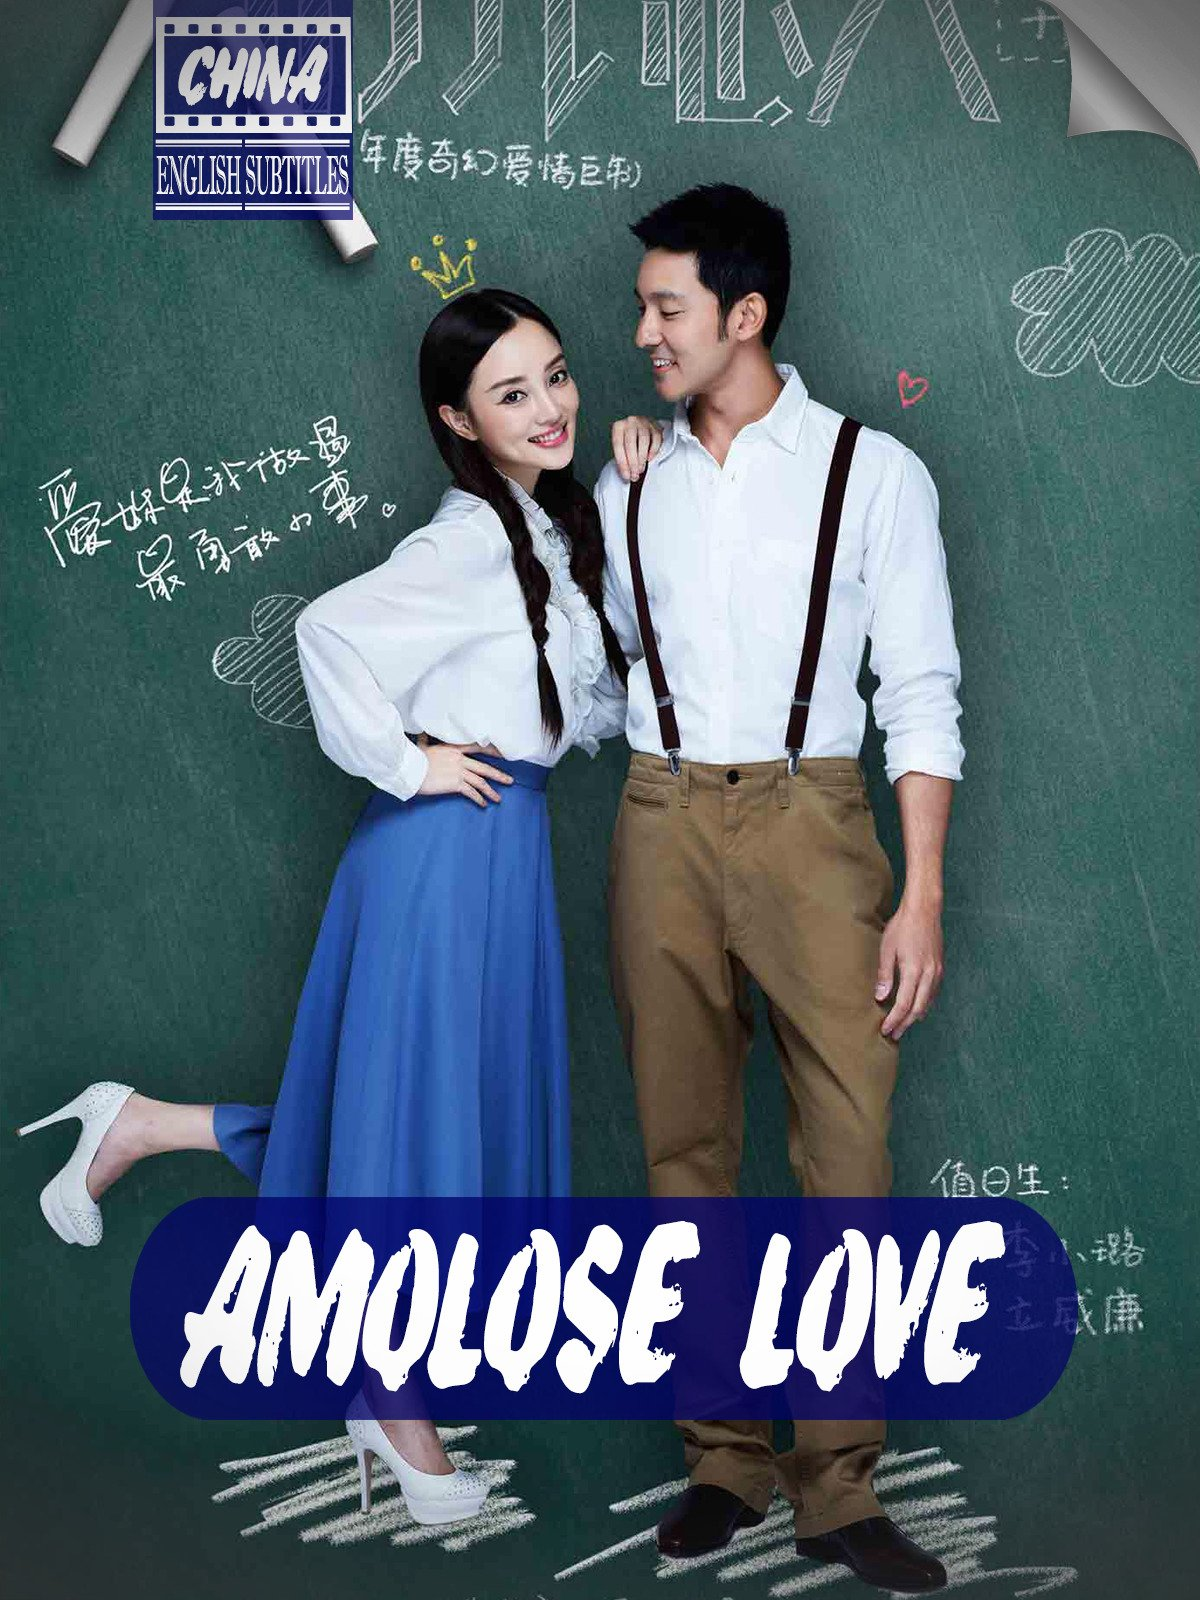 Amolose Love (english subtitles) China